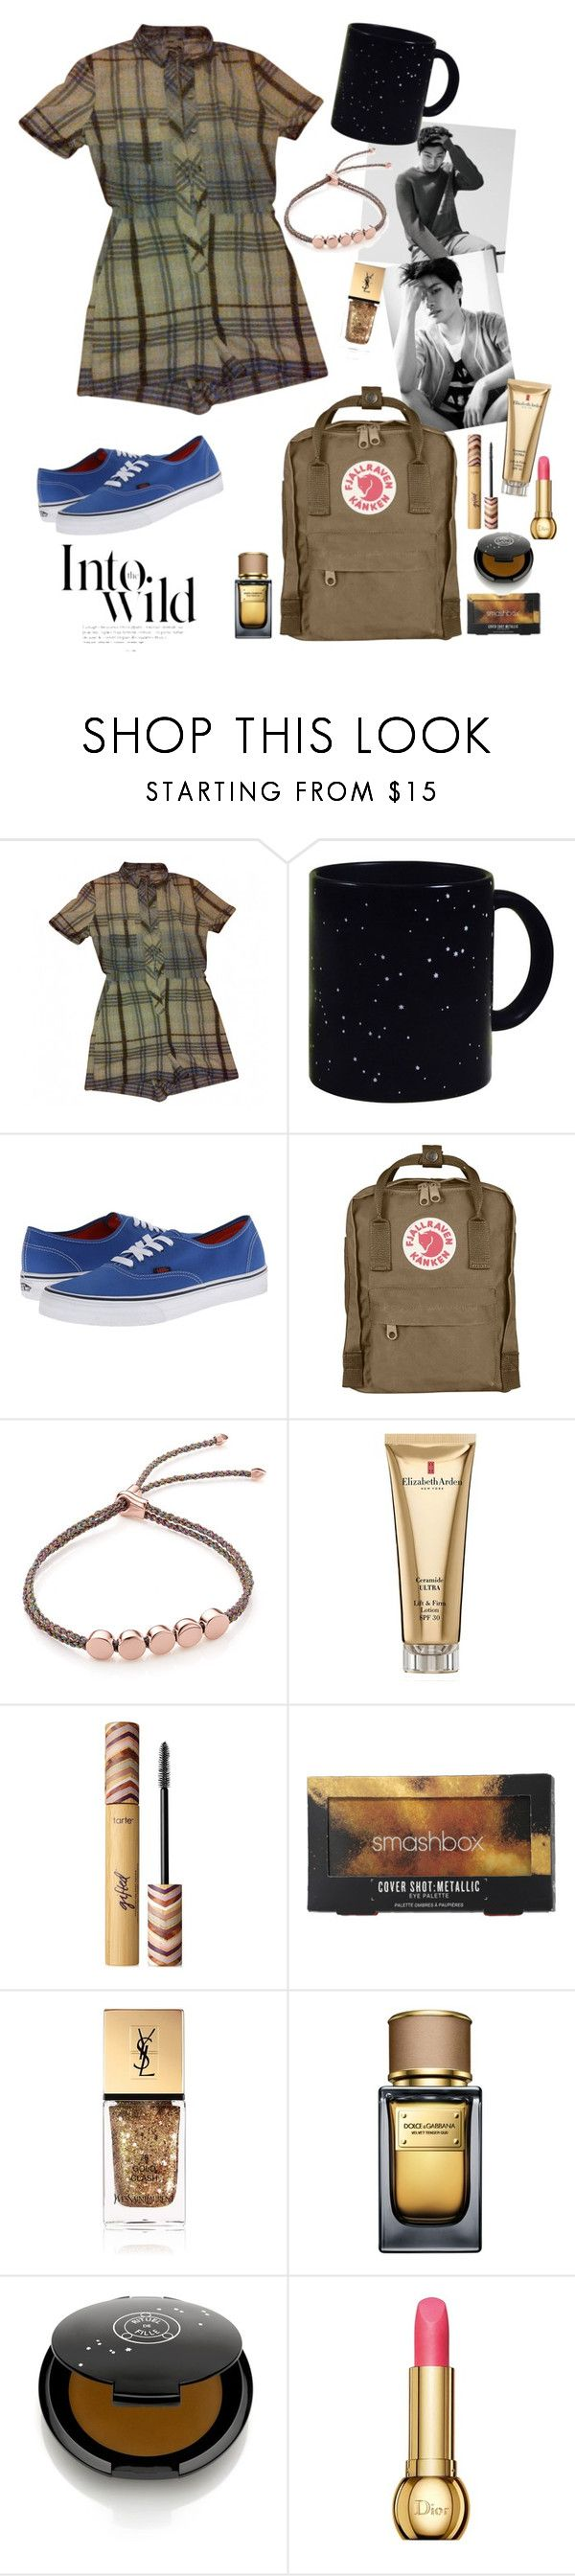 """""""that time I didn't want to go home"""" by elliewriter ❤ liked on Polyvore featuring ASOS, Vans, Fjällräven, Monica Vinader, Elizabeth Arden, tarte, Smashbox, Yves Saint Laurent, Dolce&Gabbana and Rituel de Fille"""